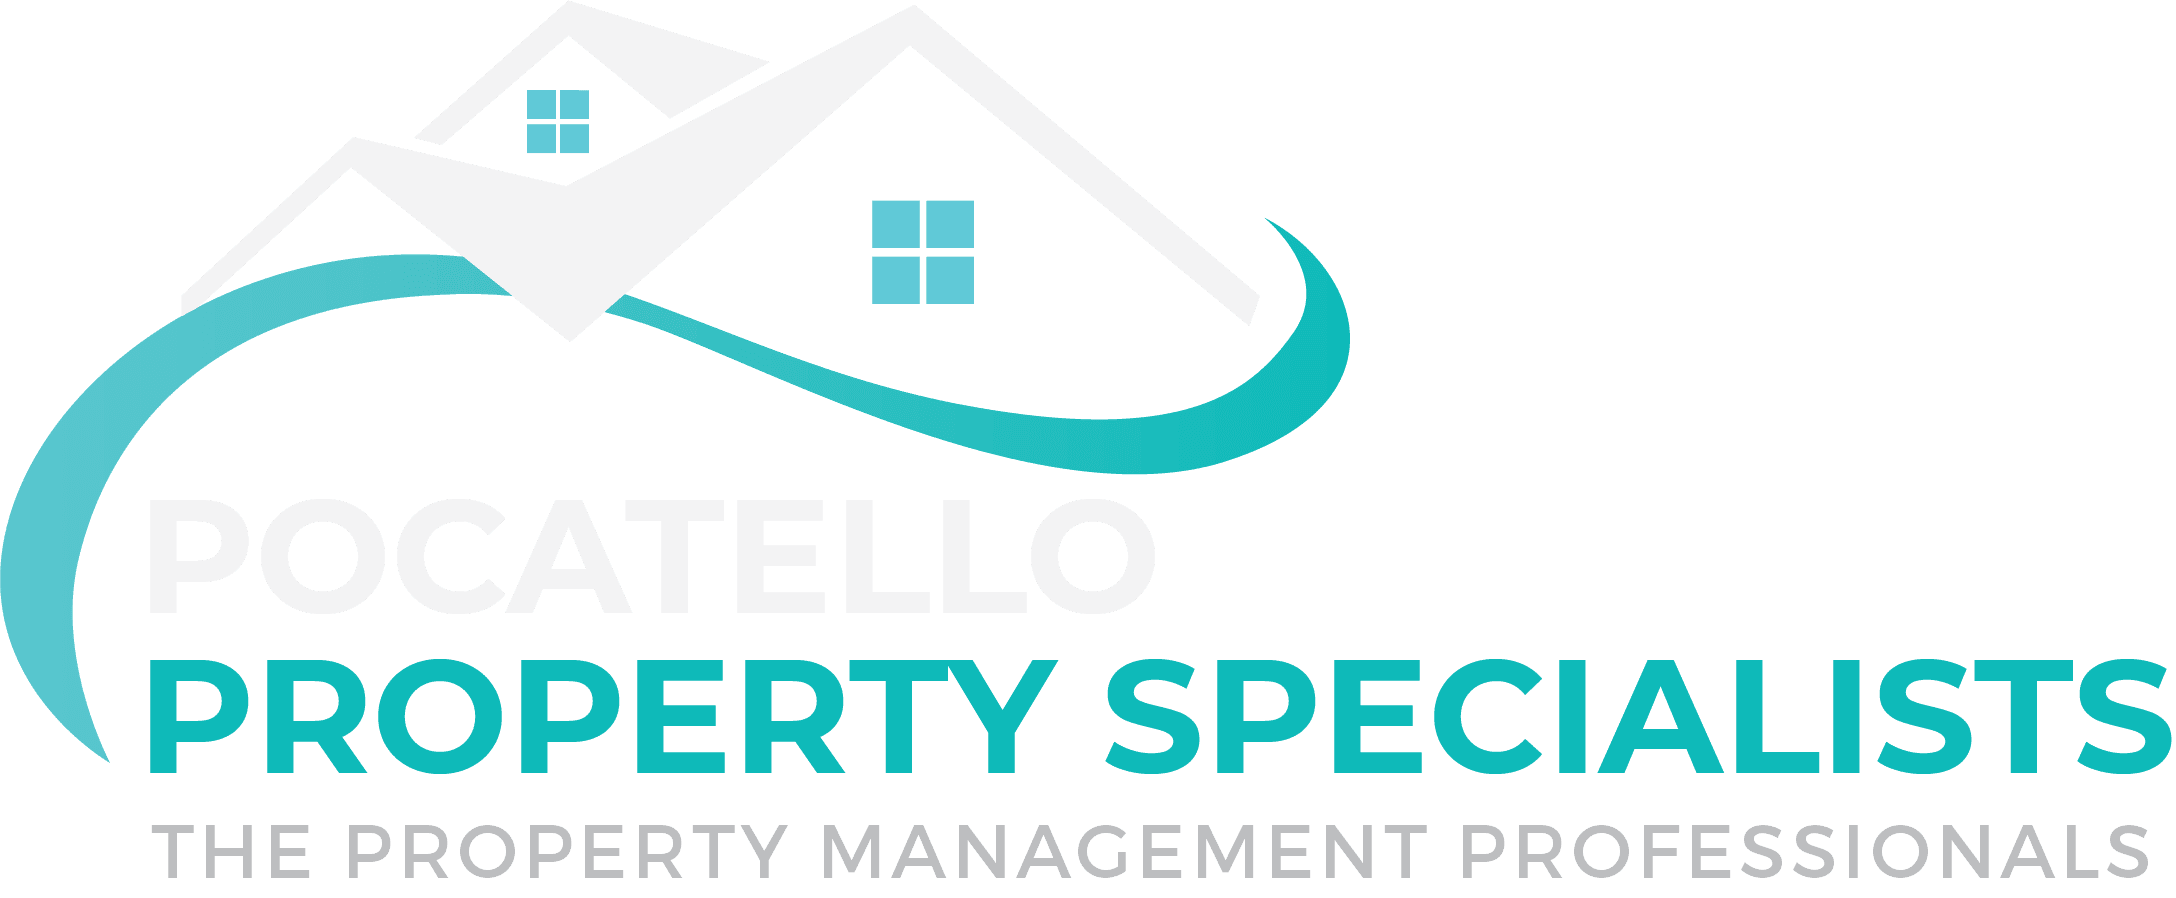 Pocatello Property Specialists